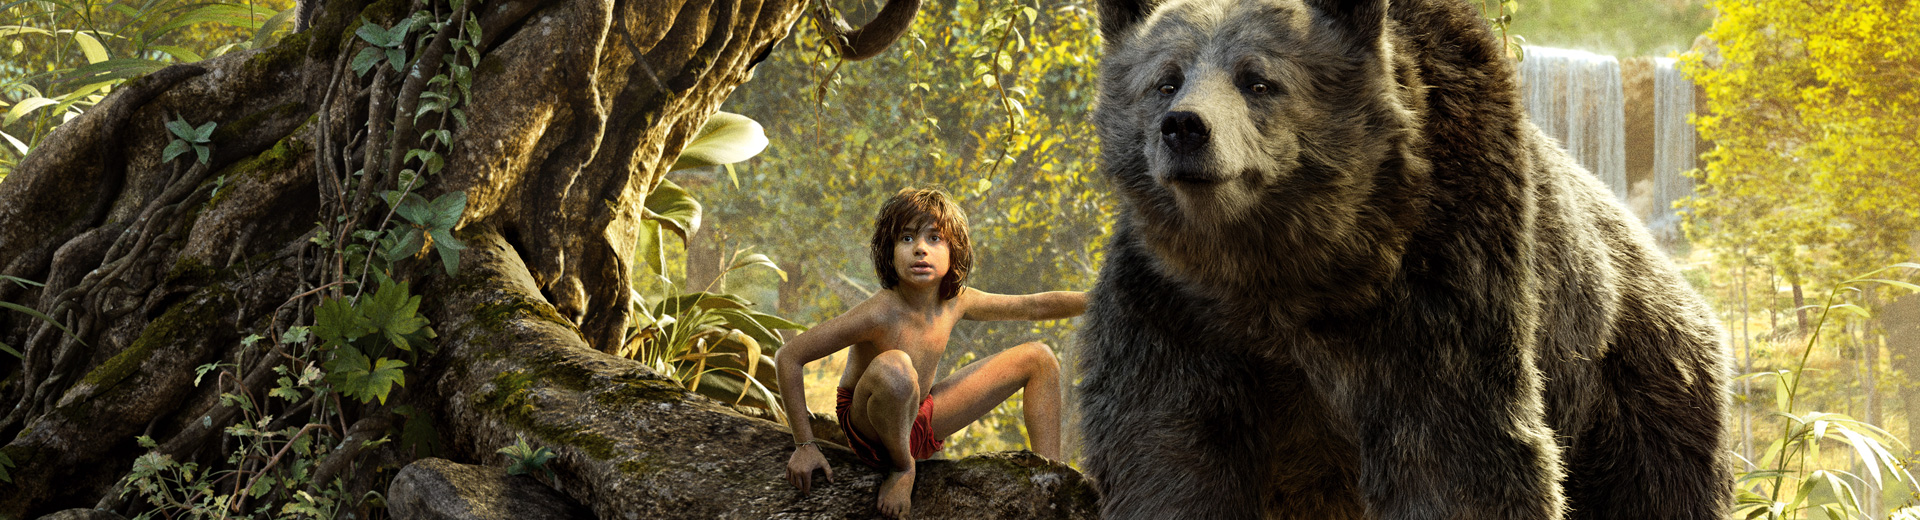 Our ranking of the best Jungle Book songs & covers